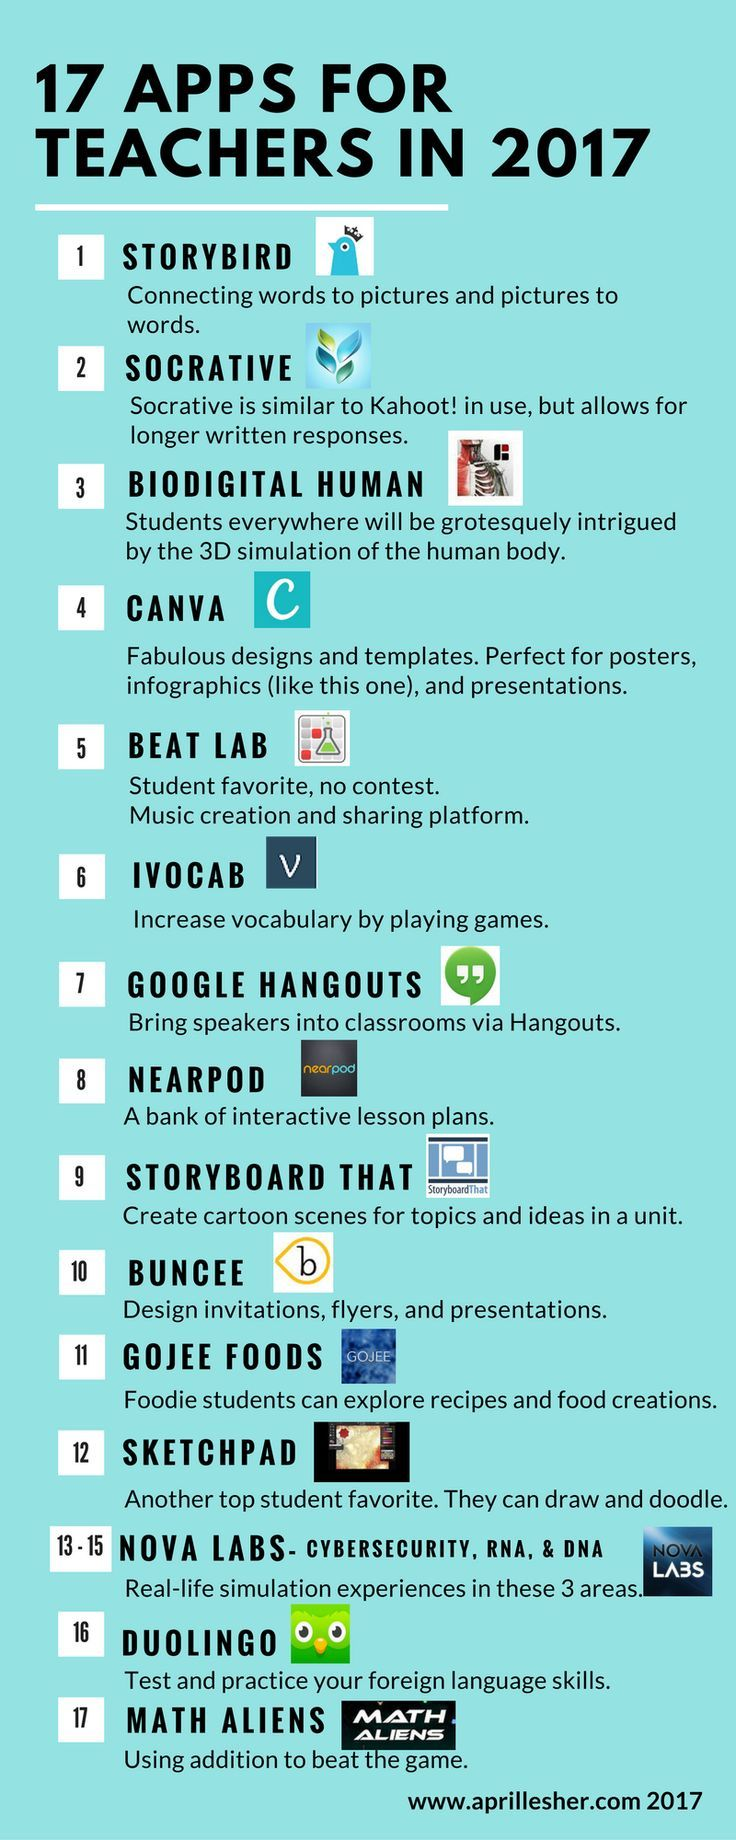 17 Apps for Teachers in 2017. Which ones have you tried? #edchat #instructionaltechnology | aprillesher.com